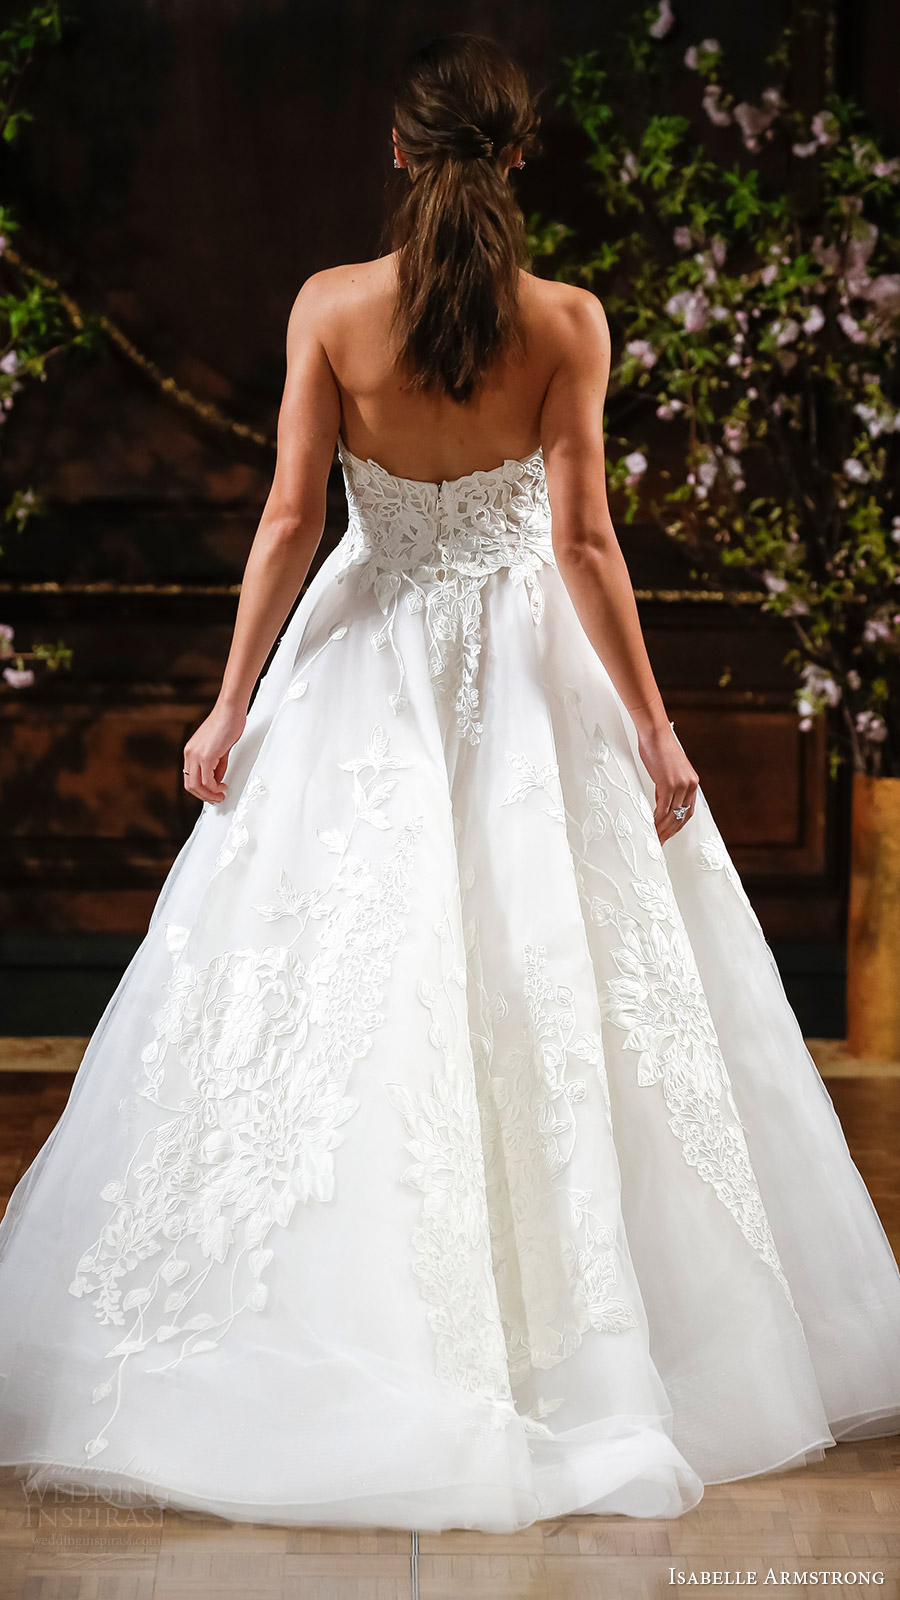 isabelle armstrong bridal spring 2017 strapless sweetheart aline wedding dress (charlie) bv romantic